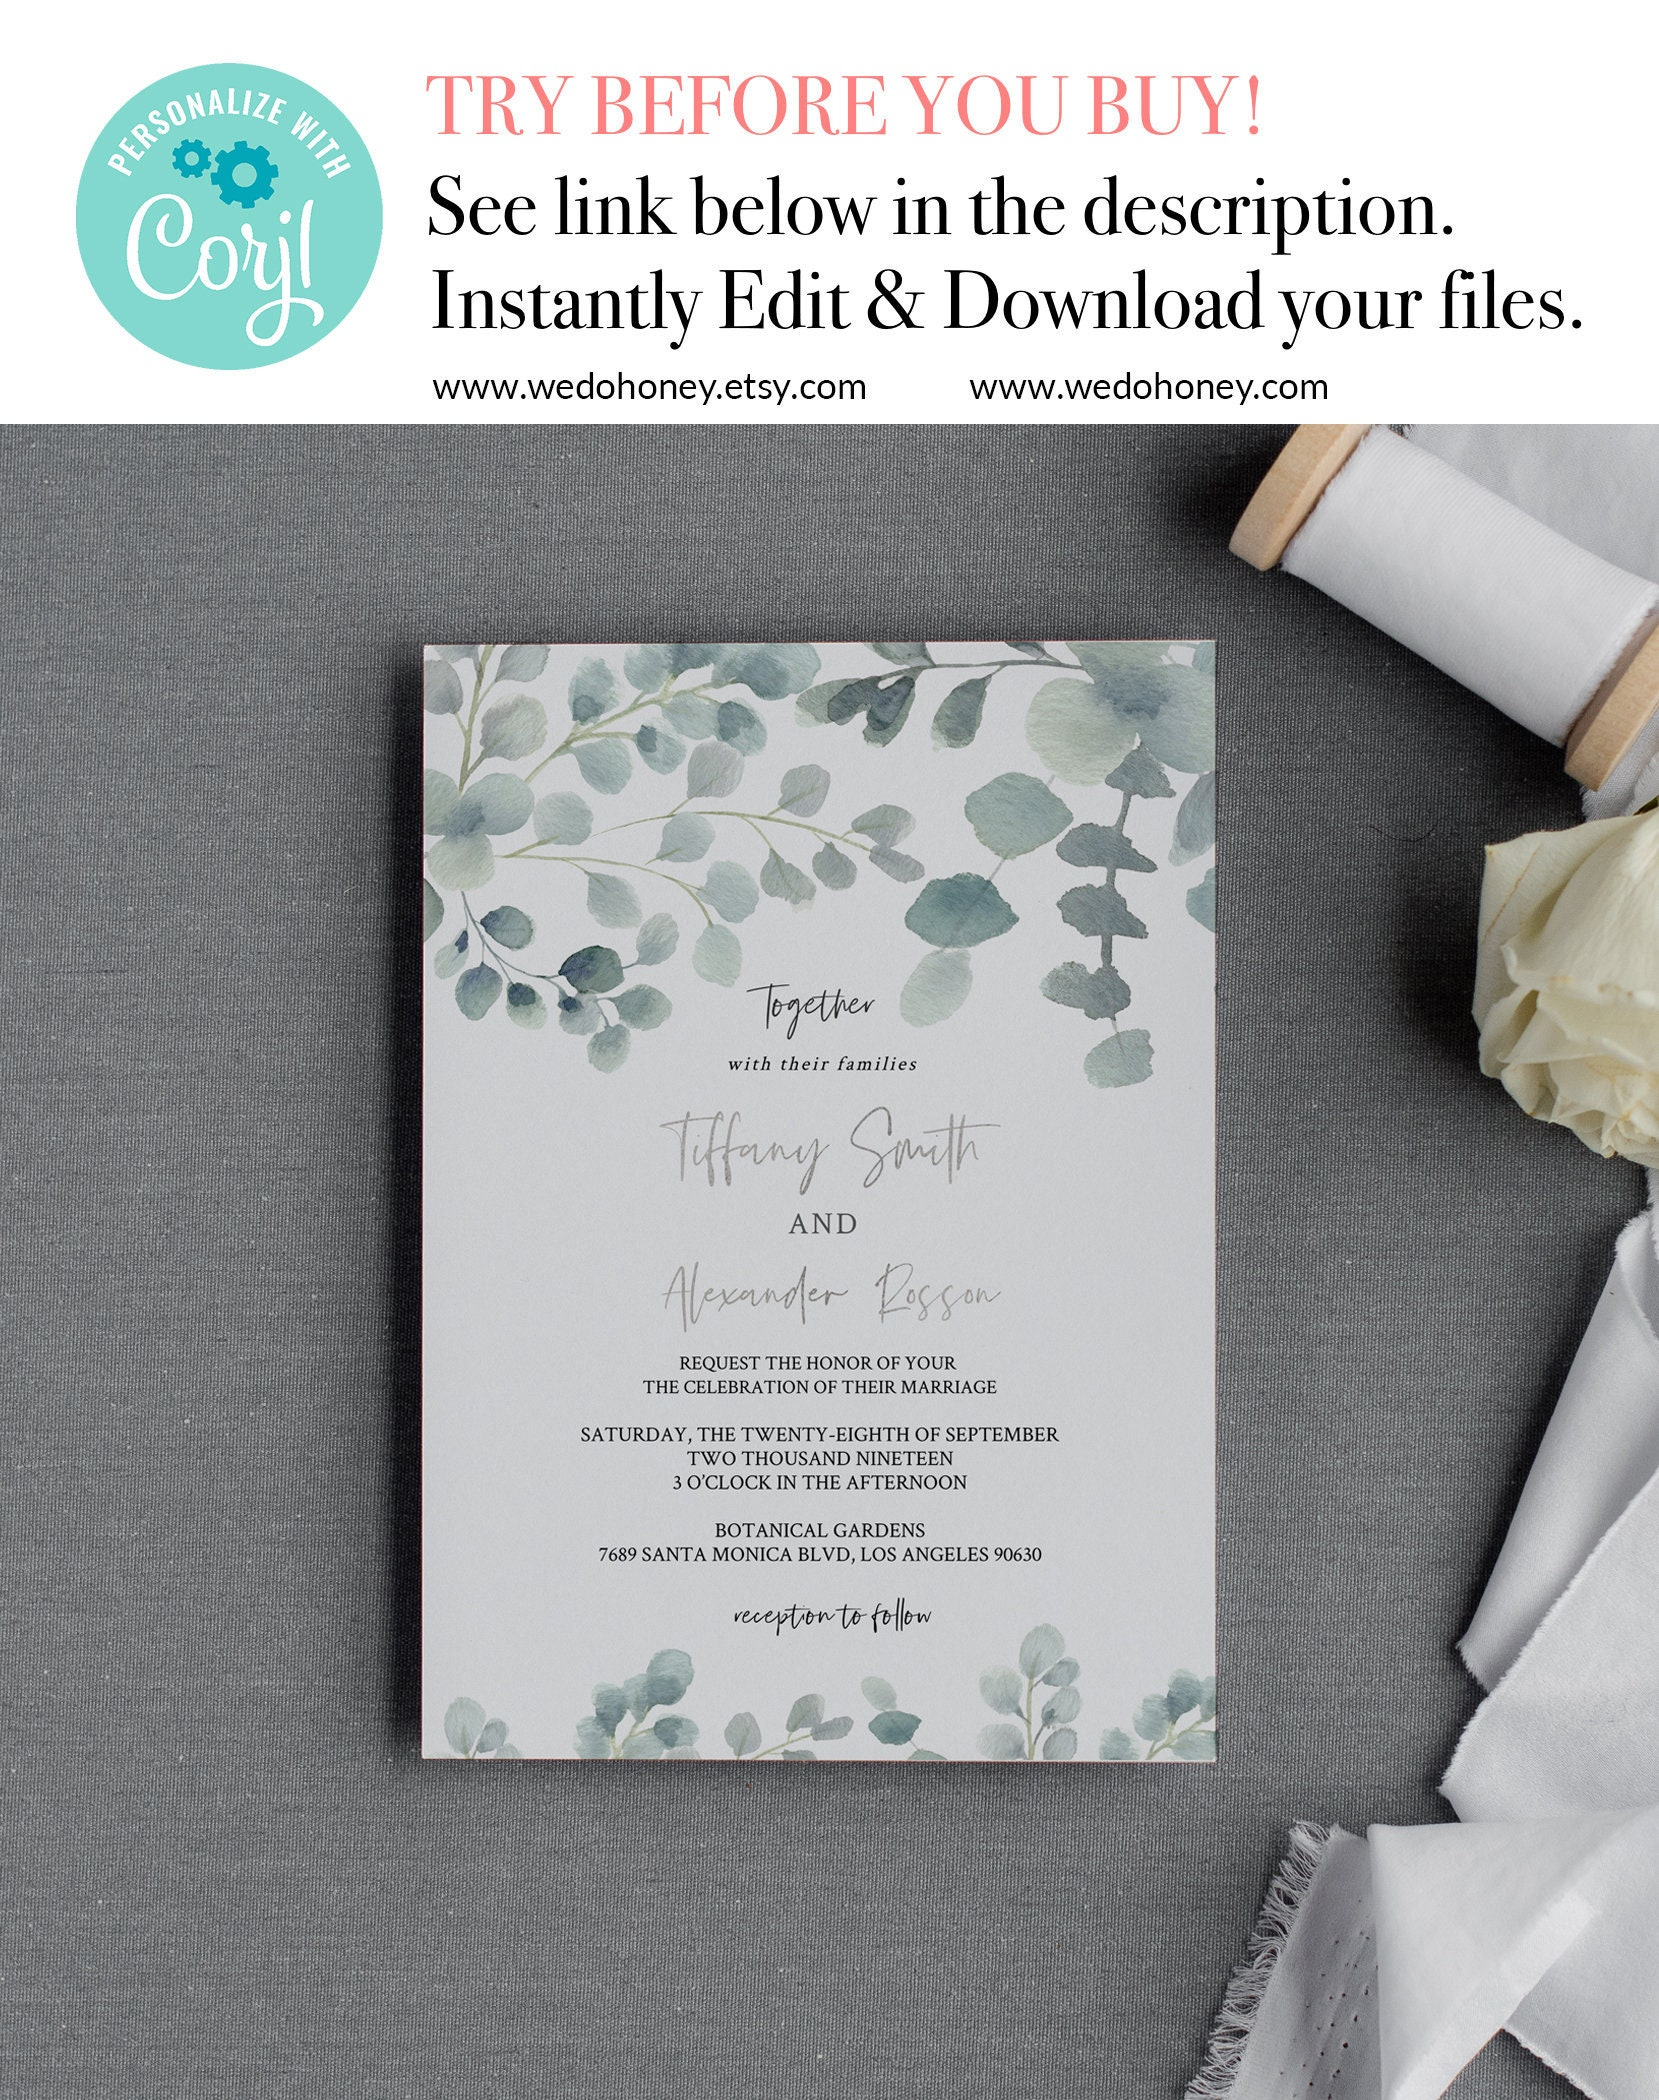 Wedding Invitation Template, Suite Invite, Eucalyptus Greenery, Editable Text, RSVP and Details Card #081